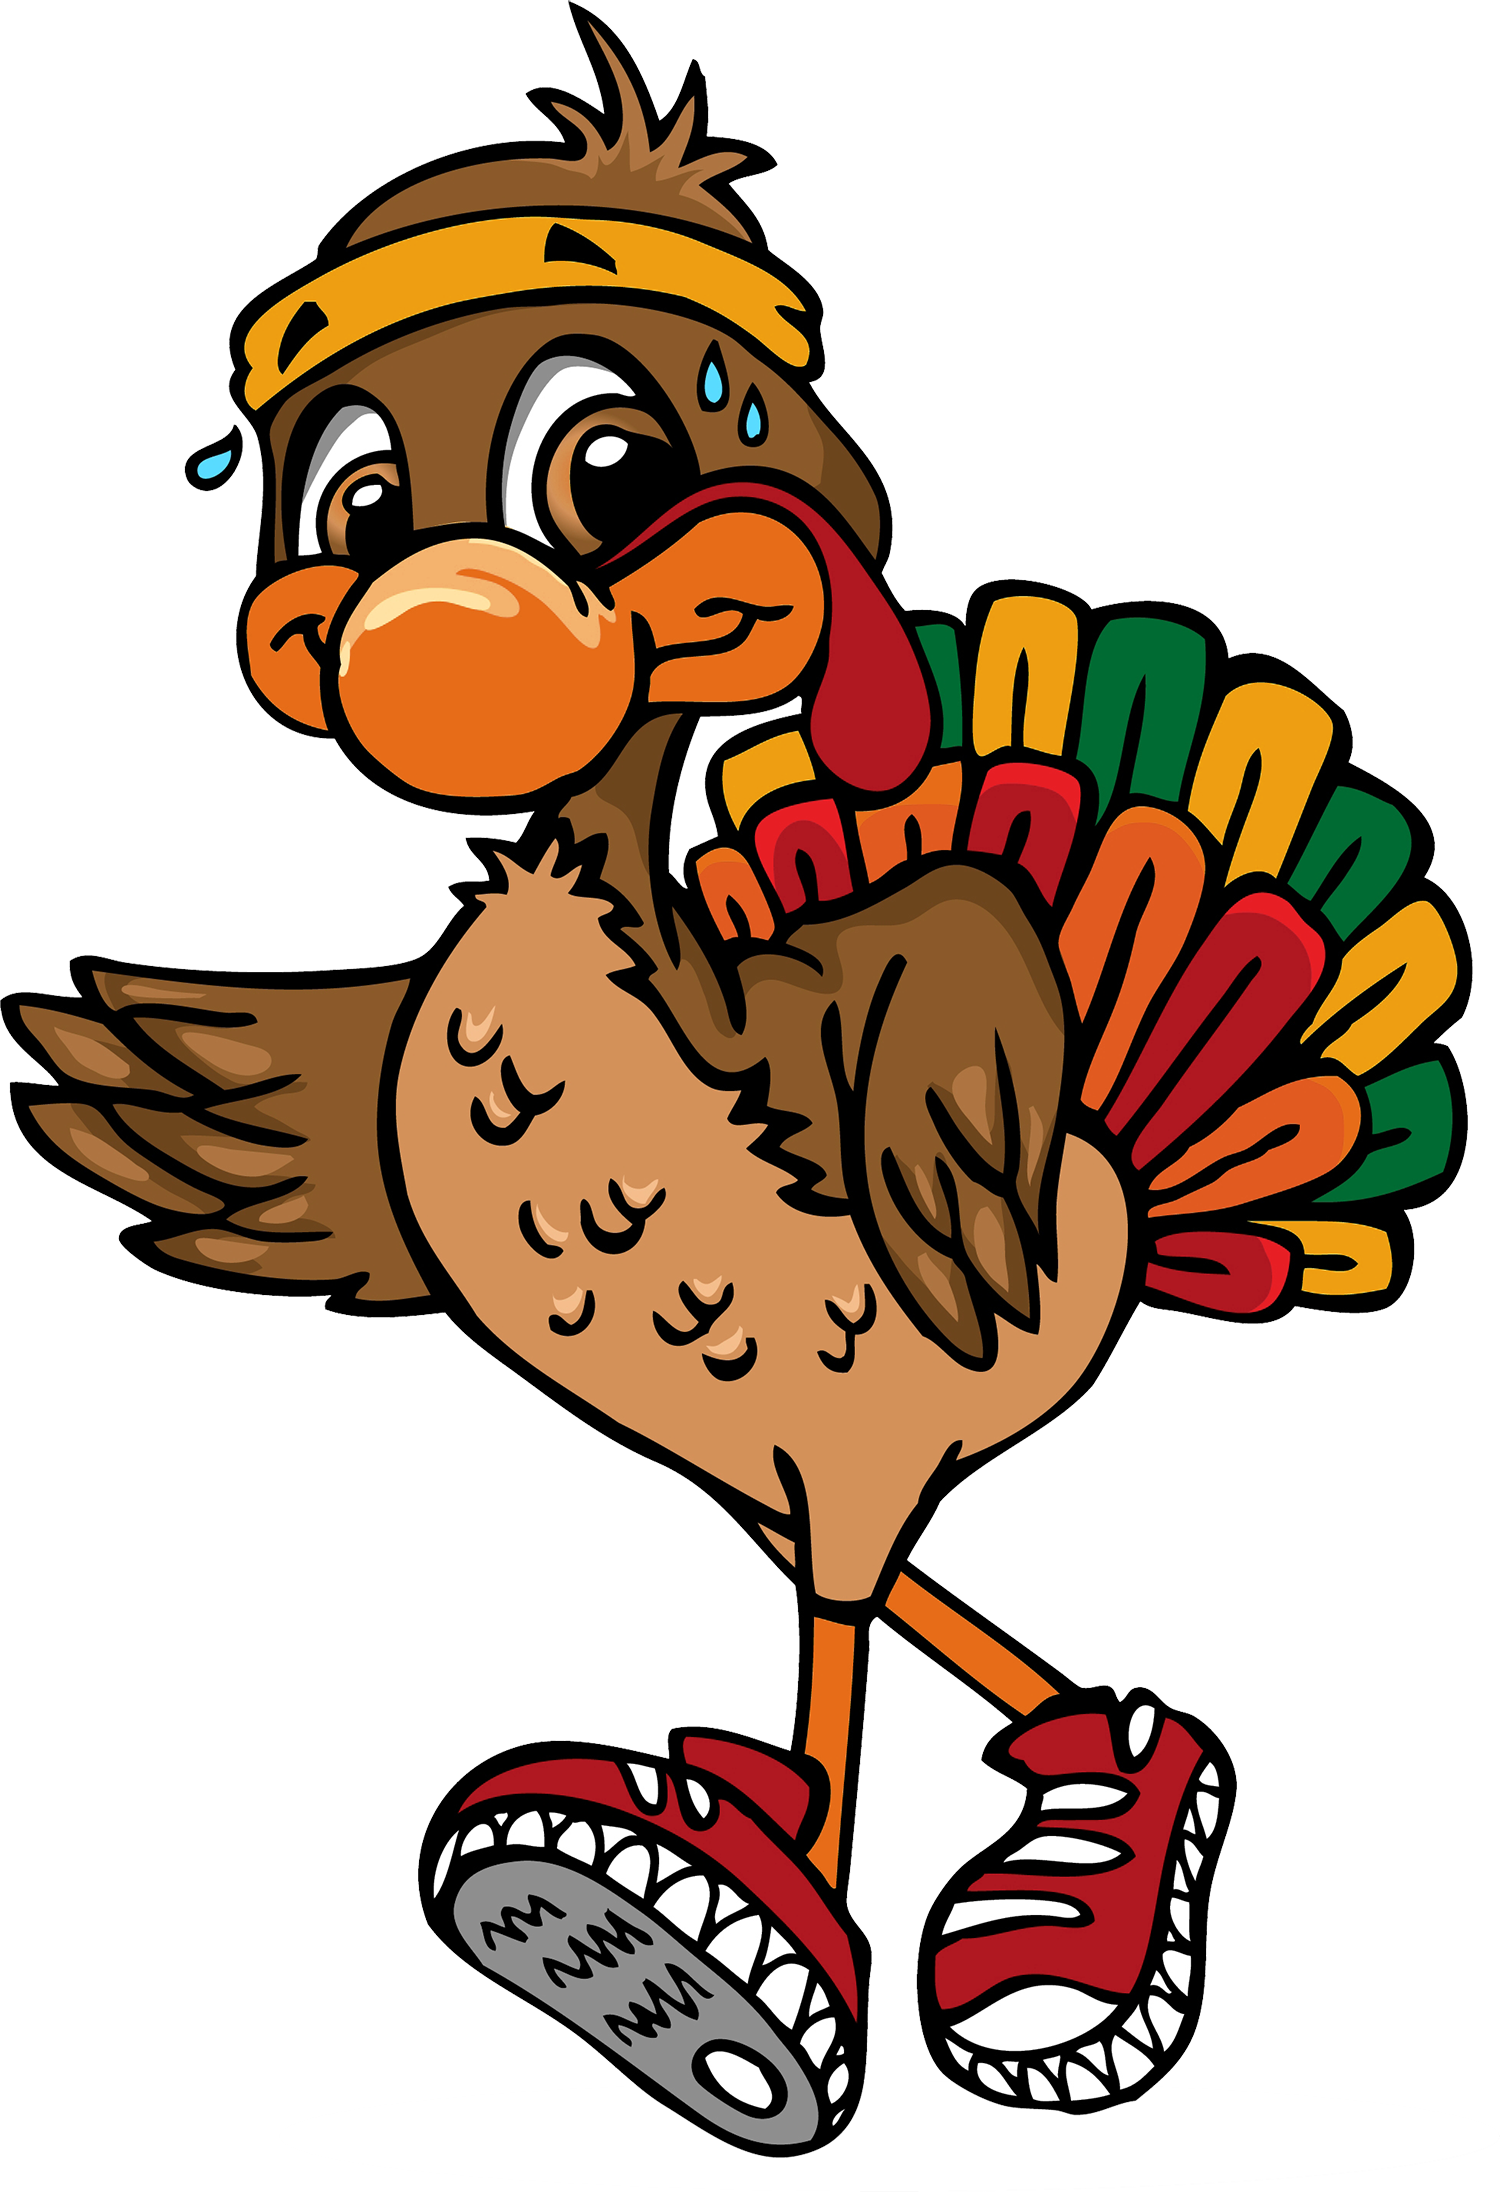 Turkey trot clipart png library download Federation of Organizations Turkey Trot 5K Run - elitefeats png library download